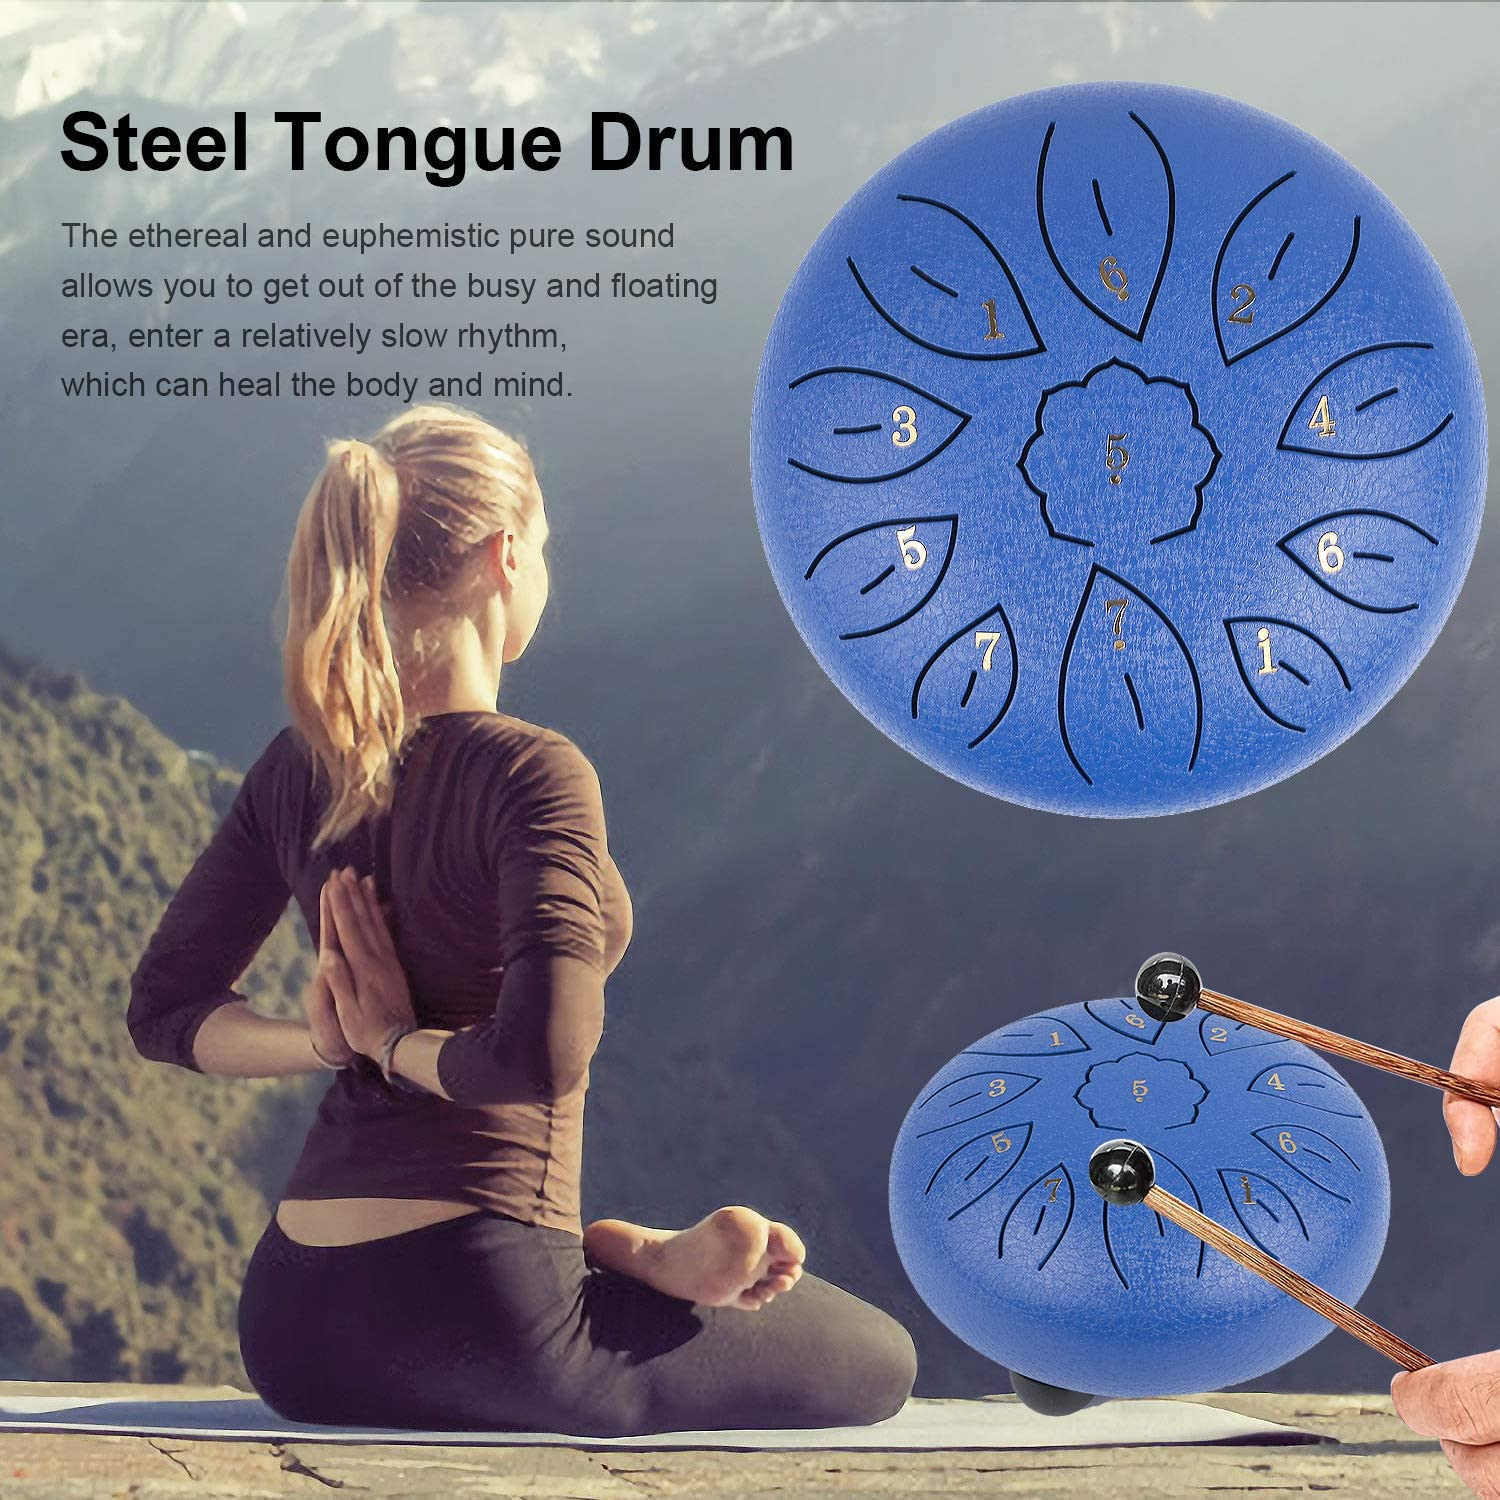 Finger Picks Blue Book Steel Tongue Drum 11 Notes 6 Inches Dia Lotus type Steel Handpan Drum Percussion Drums Instrument Steel Tung Drum C-Key with Mallets Notes Sticker,Drum Stick Holders Bag